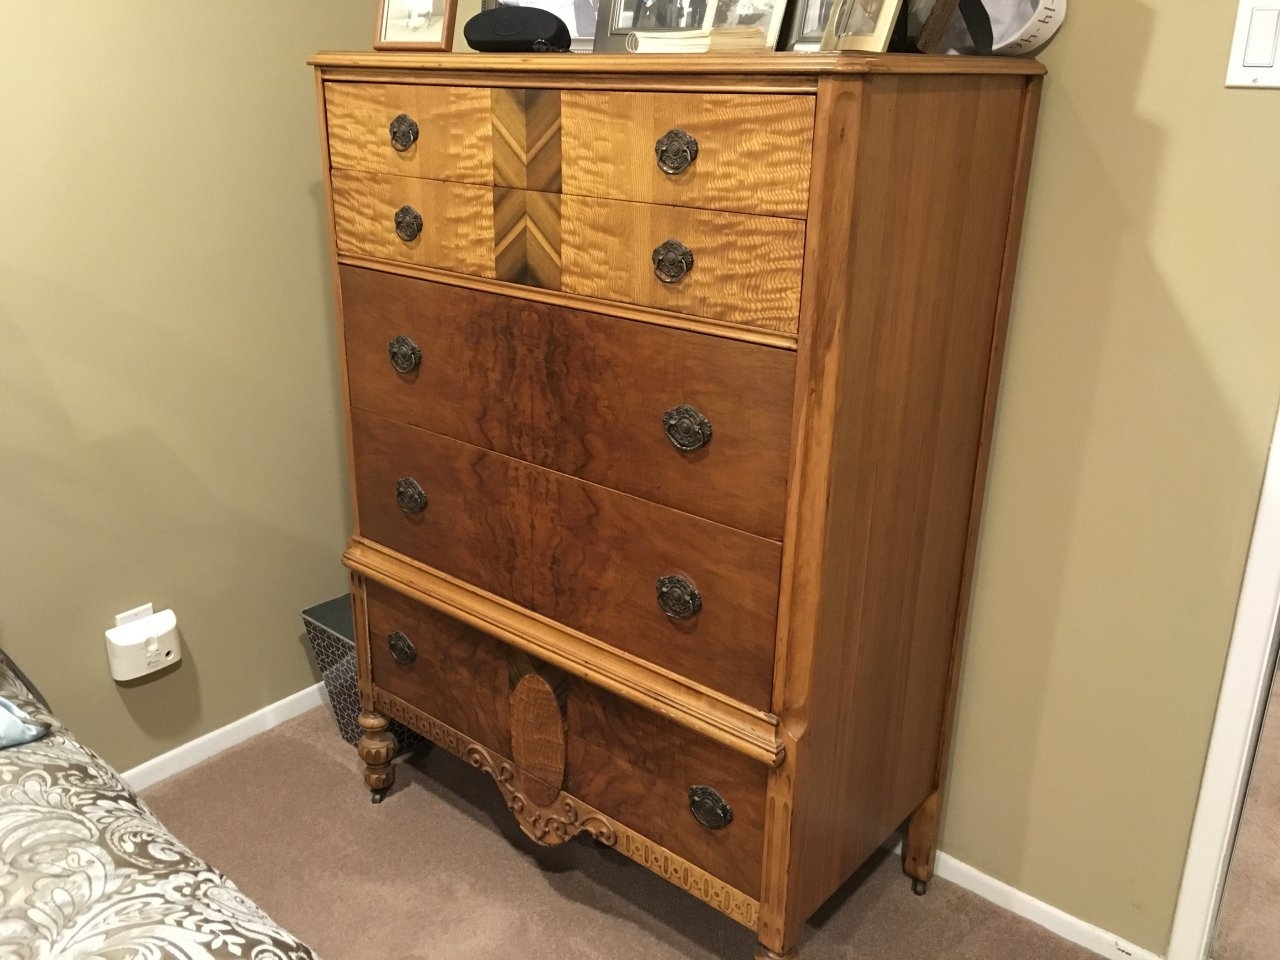 I Have A Gettysburg Furniture Company Bedroom Set Men S Armoire Woman S T My Antique Furniture Collection